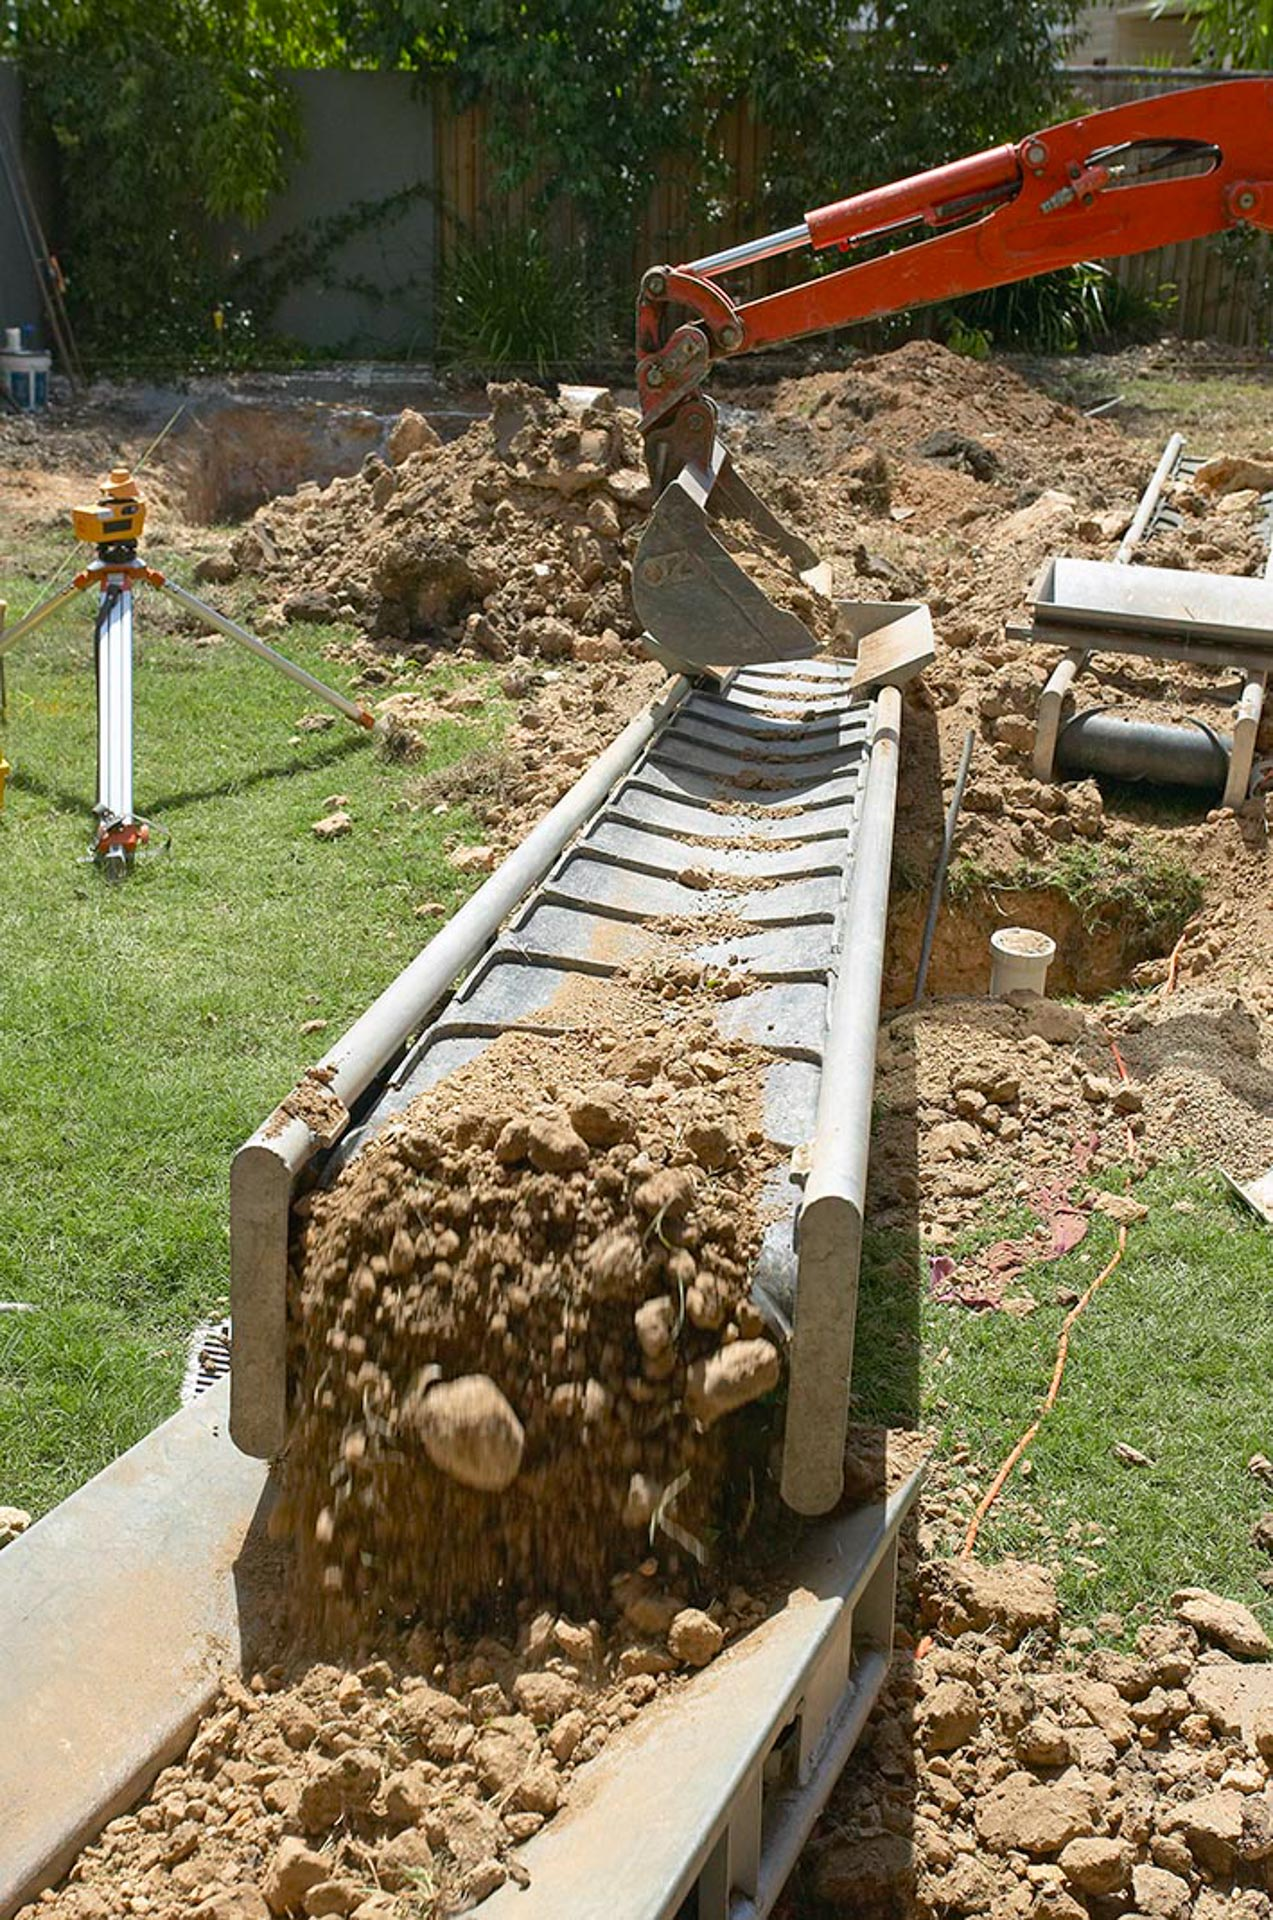 Building conveyor belt moving earth around site to preserve lawn, NZ